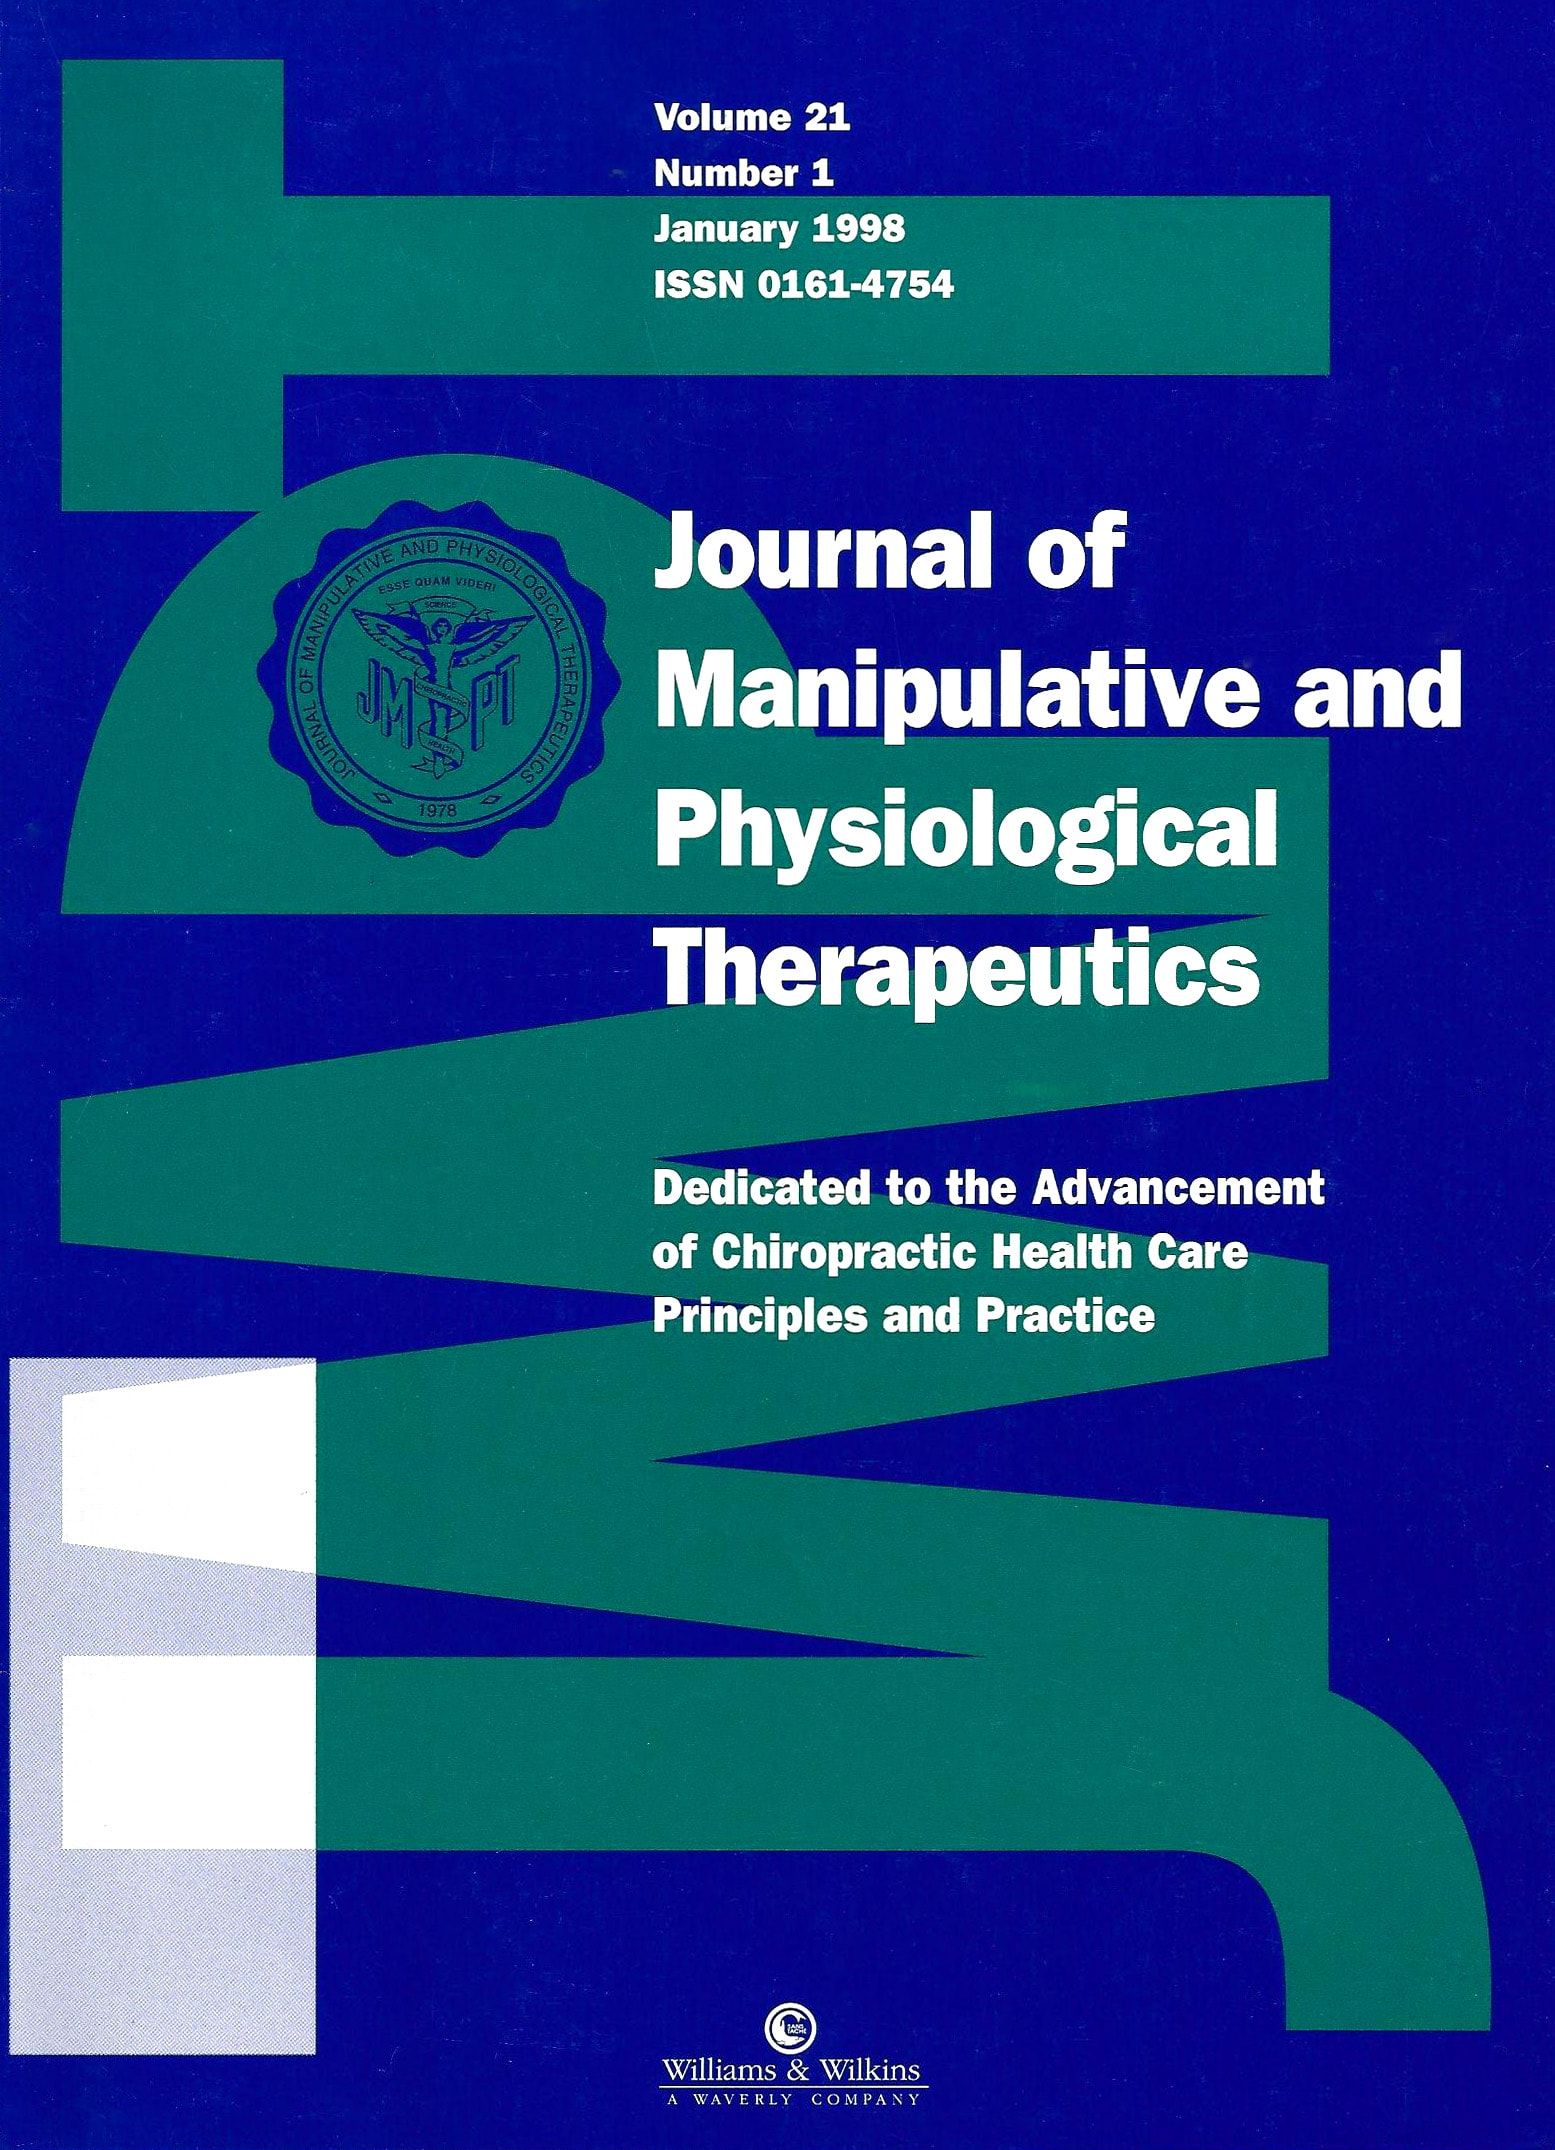 Journal of Manipulative and Physiological Therapeutics research study